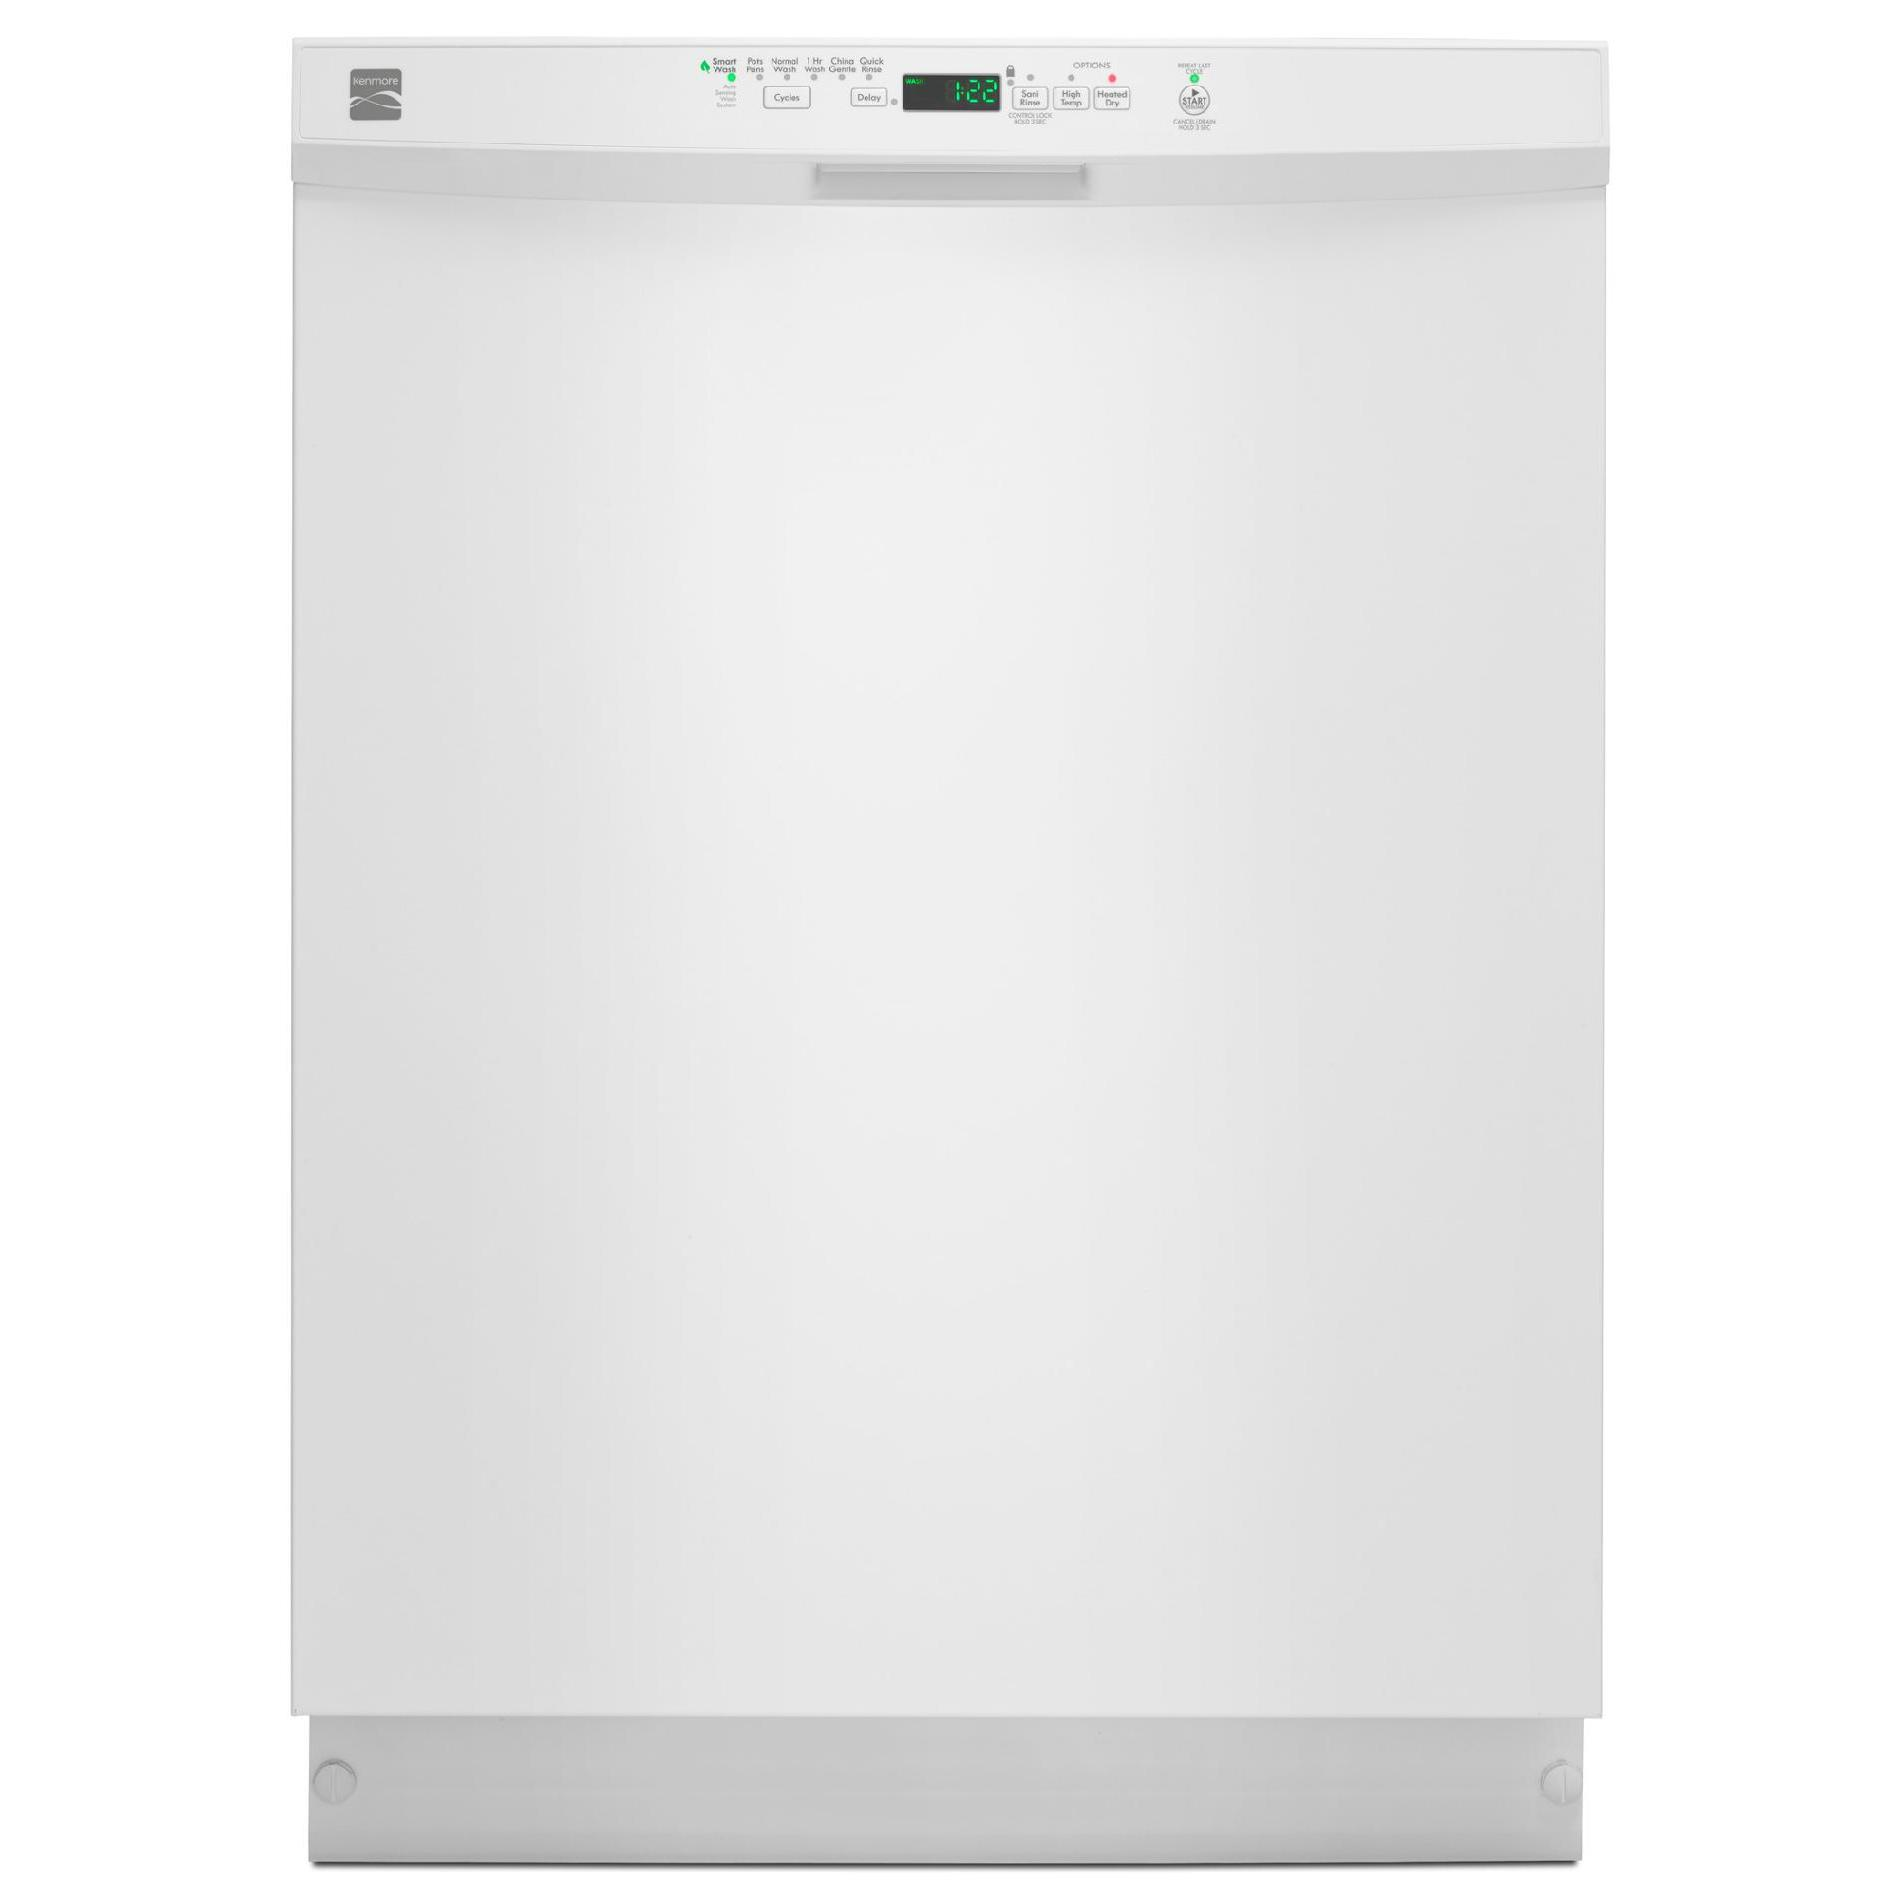 Kenmore 13222 24 Built-In Dishwasher w/ PowerWave™ Spray Arm - White